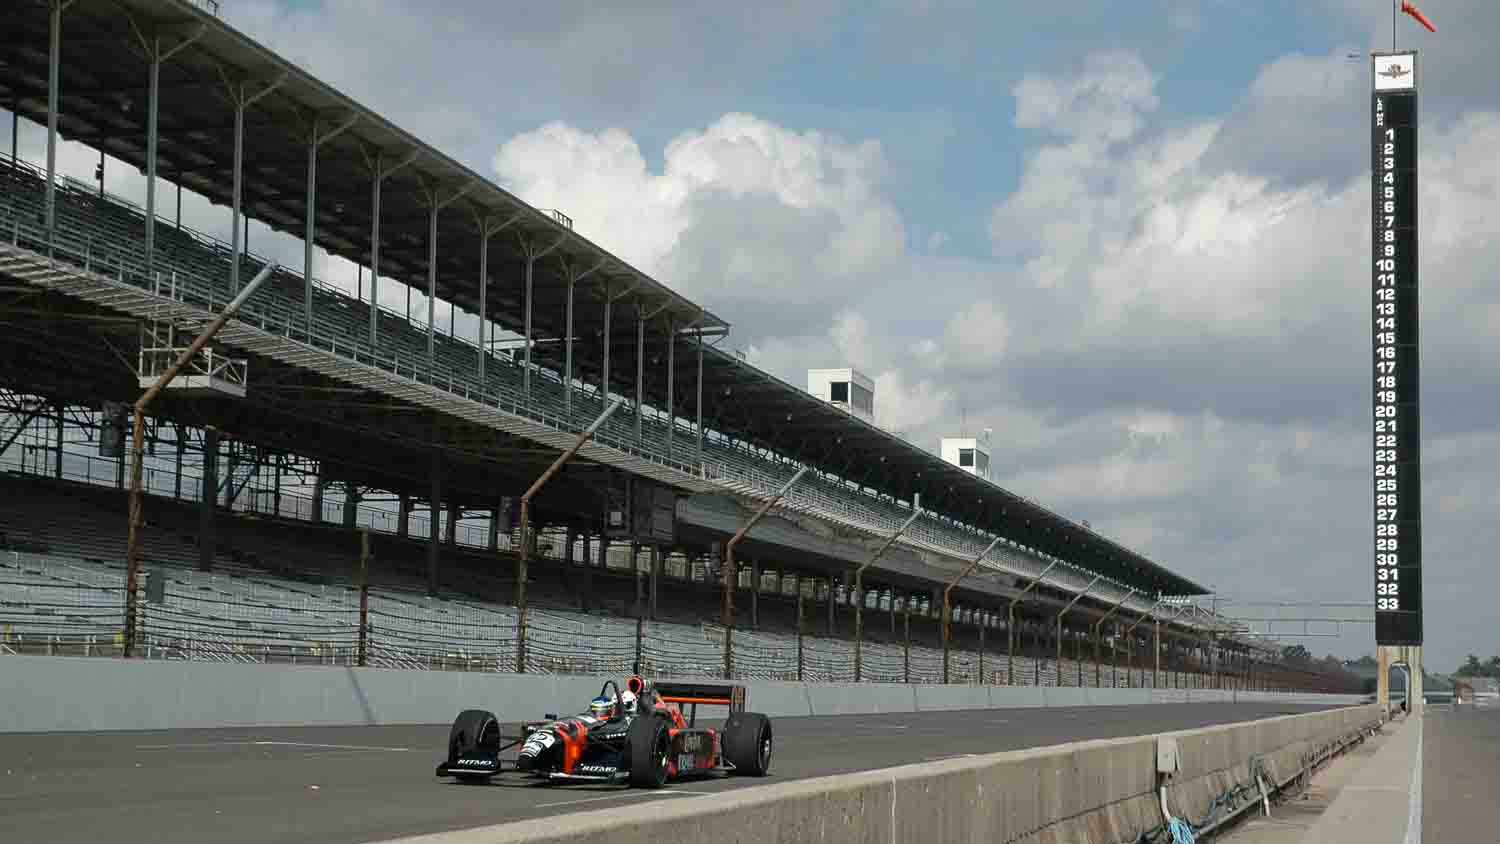 Indy racing experience 4